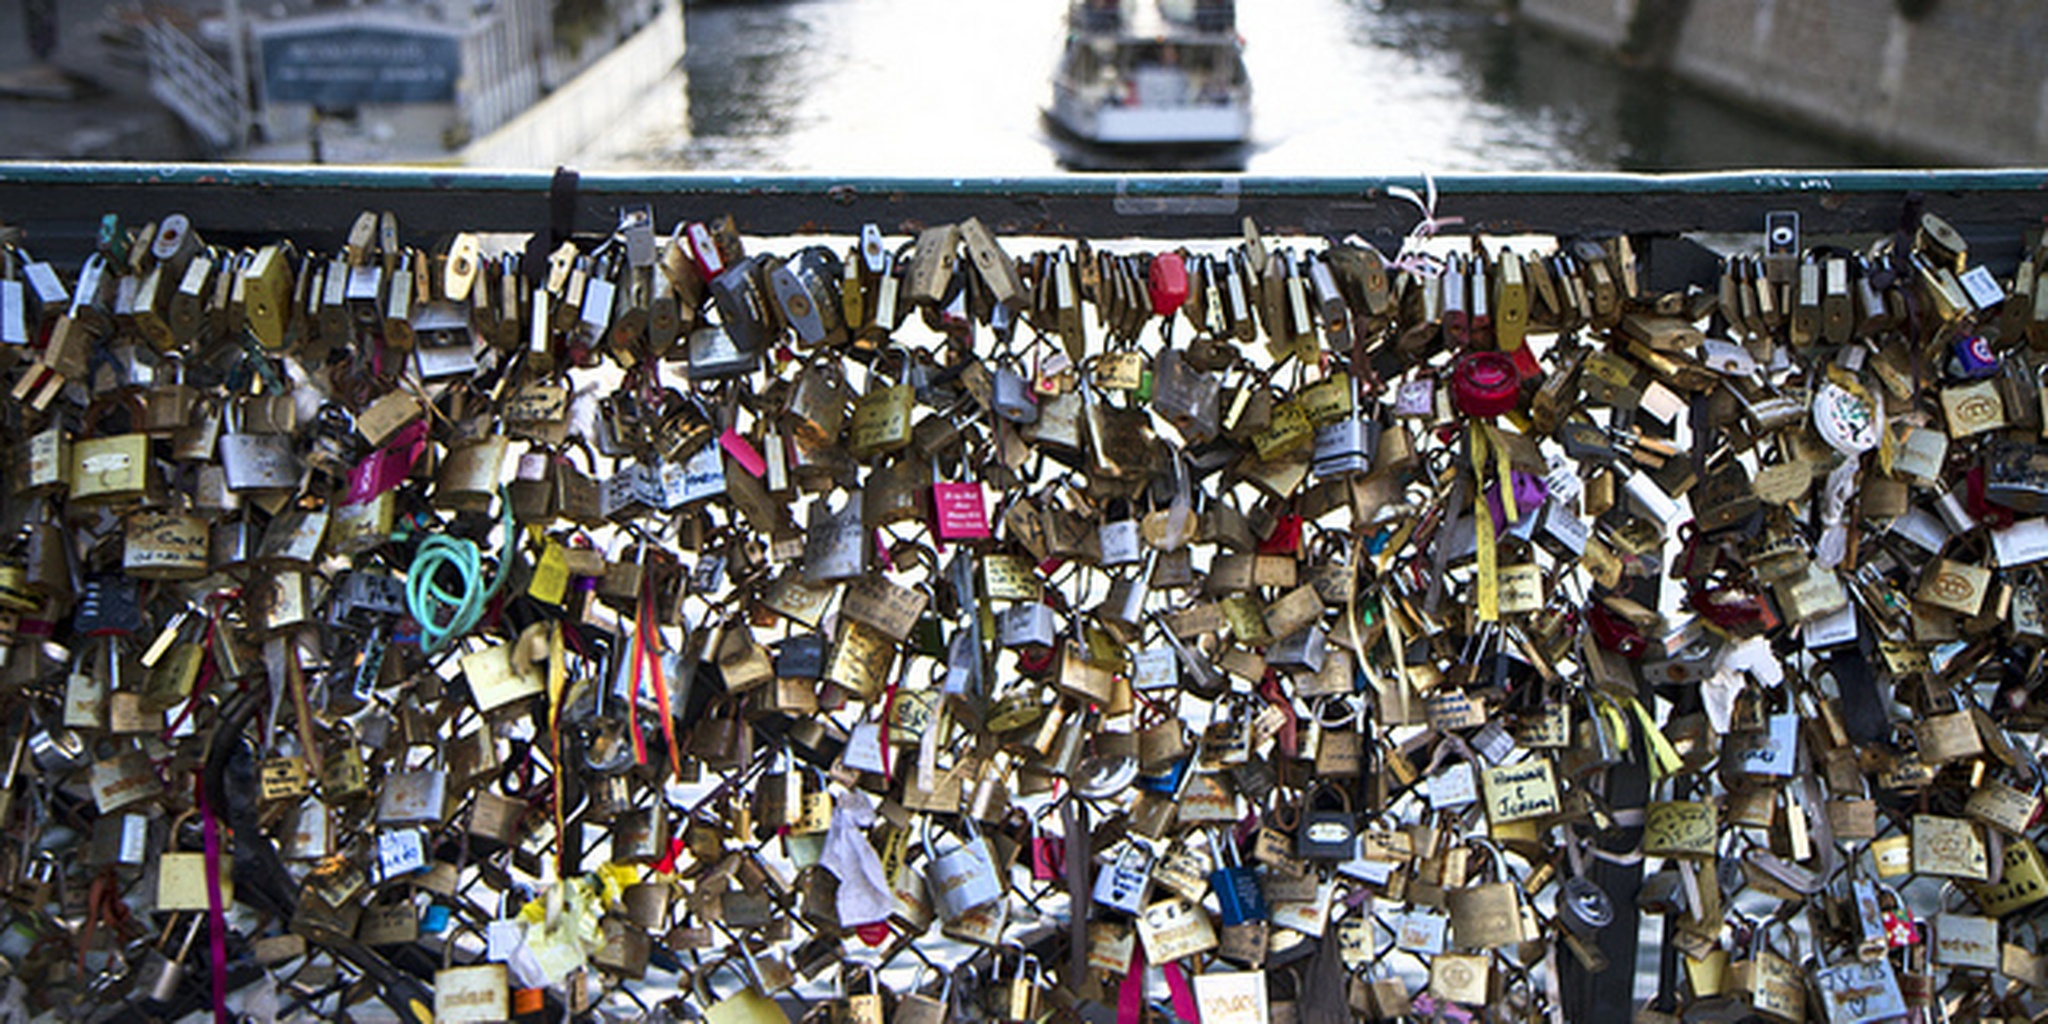 Paris to remove love locks from the Pont des Arts | The Daily Dot